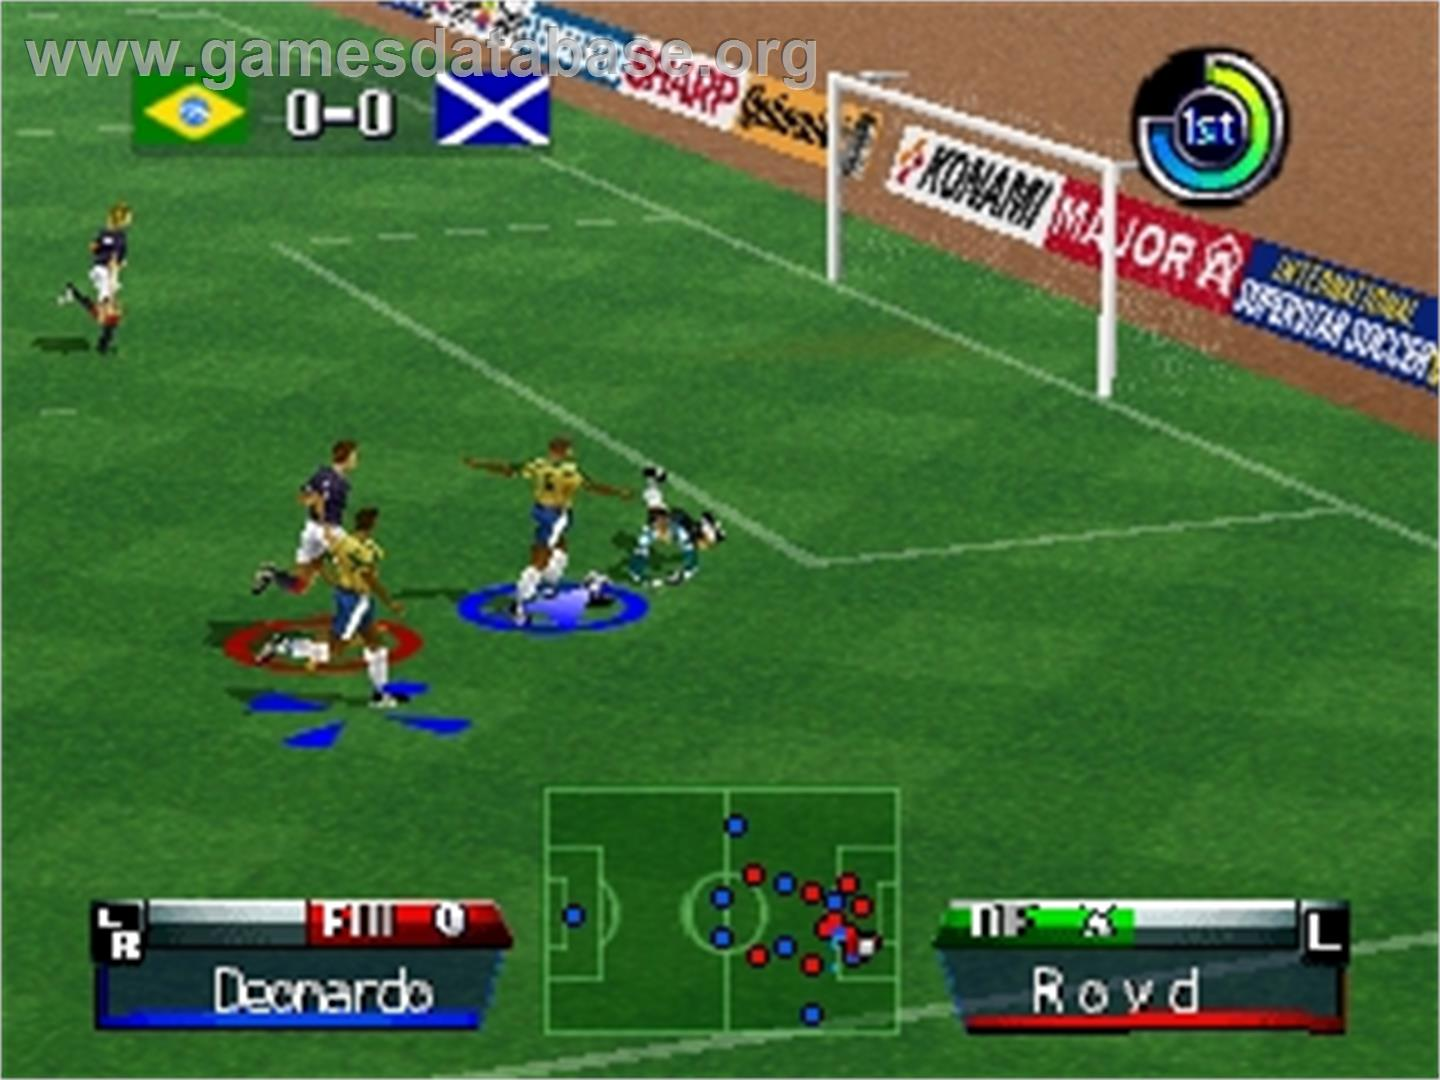 game image of International Superstar Soccer '98 on the Nintendo N64